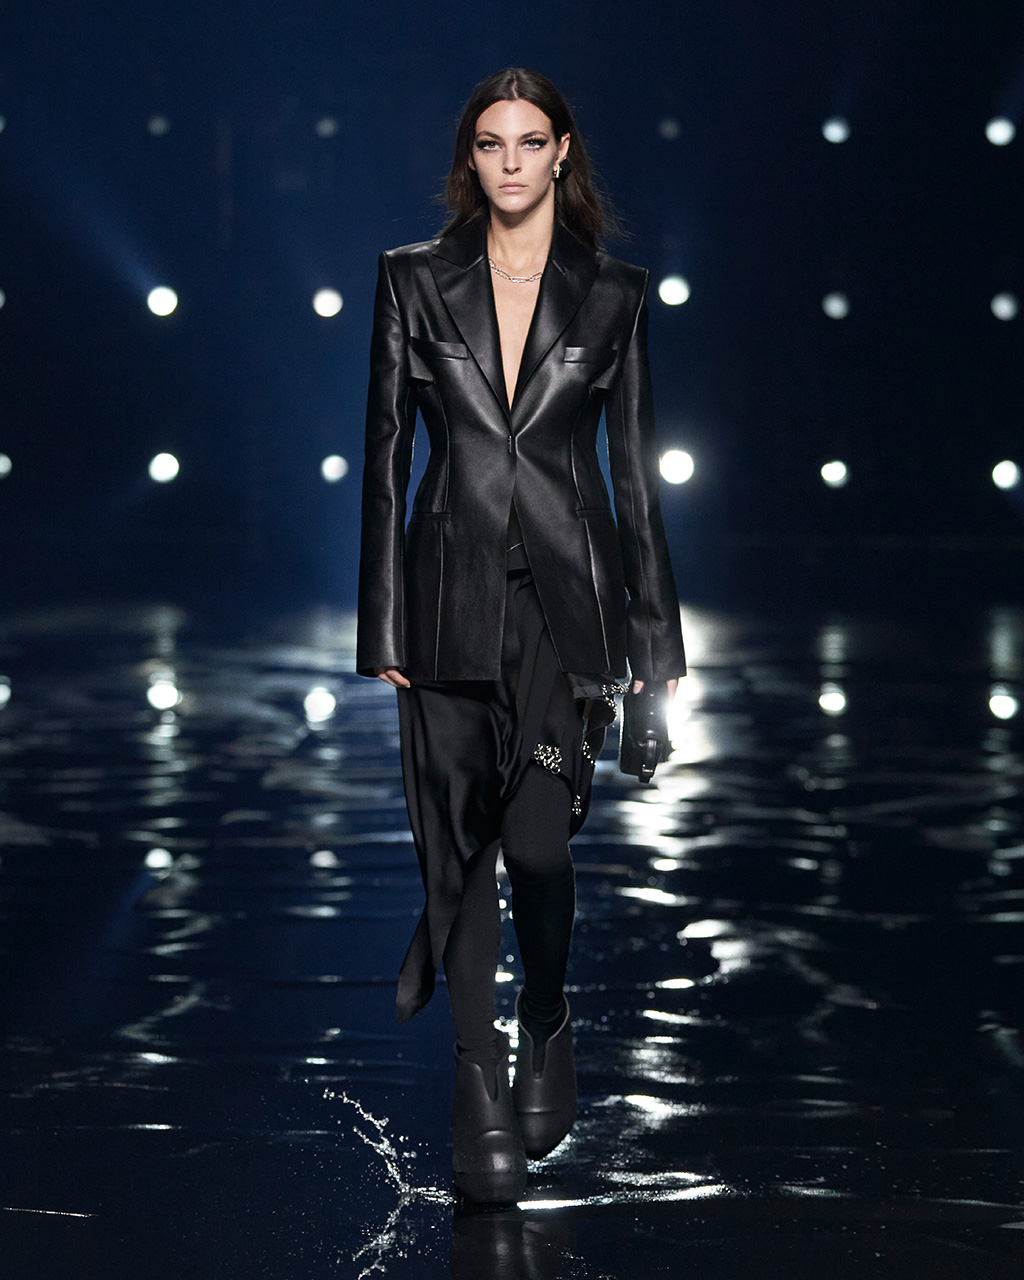 Fall Winter 2021 collection Look 8